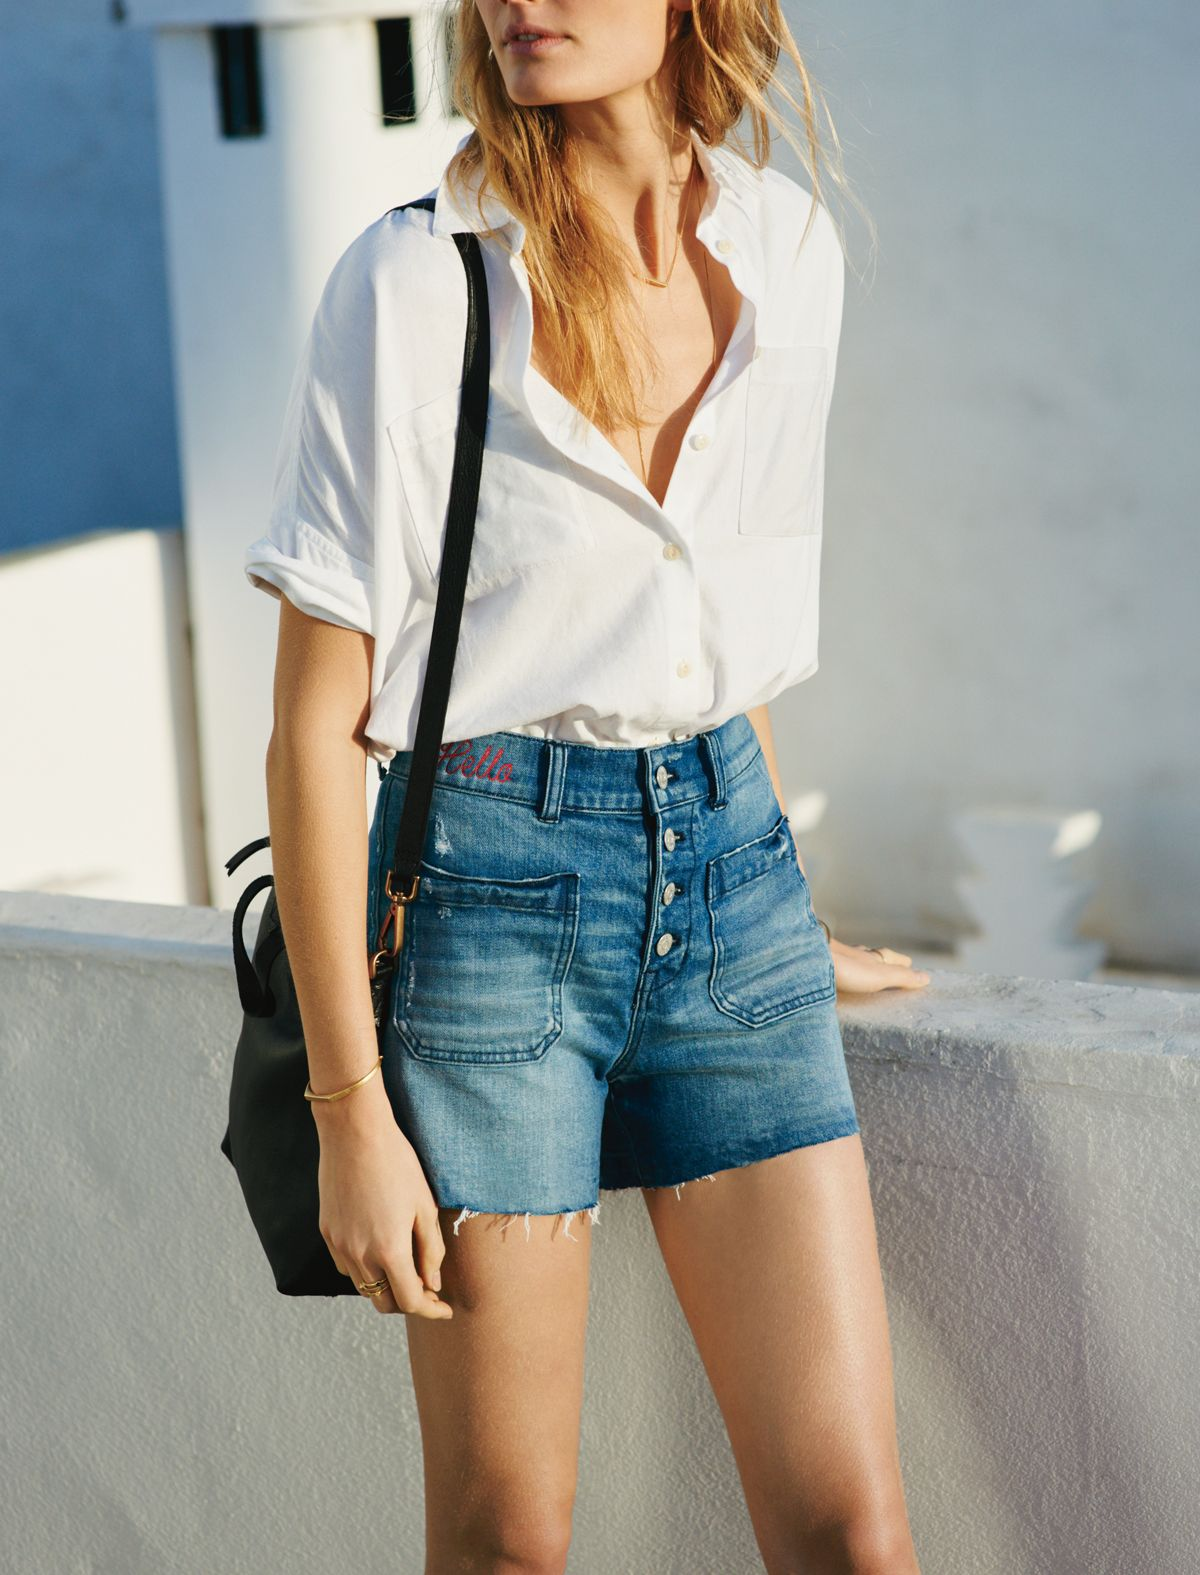 1da2572101 madewell high-rise denim shorts worn with the courier shirt + mini  transport crossbody.  everydaymadewell